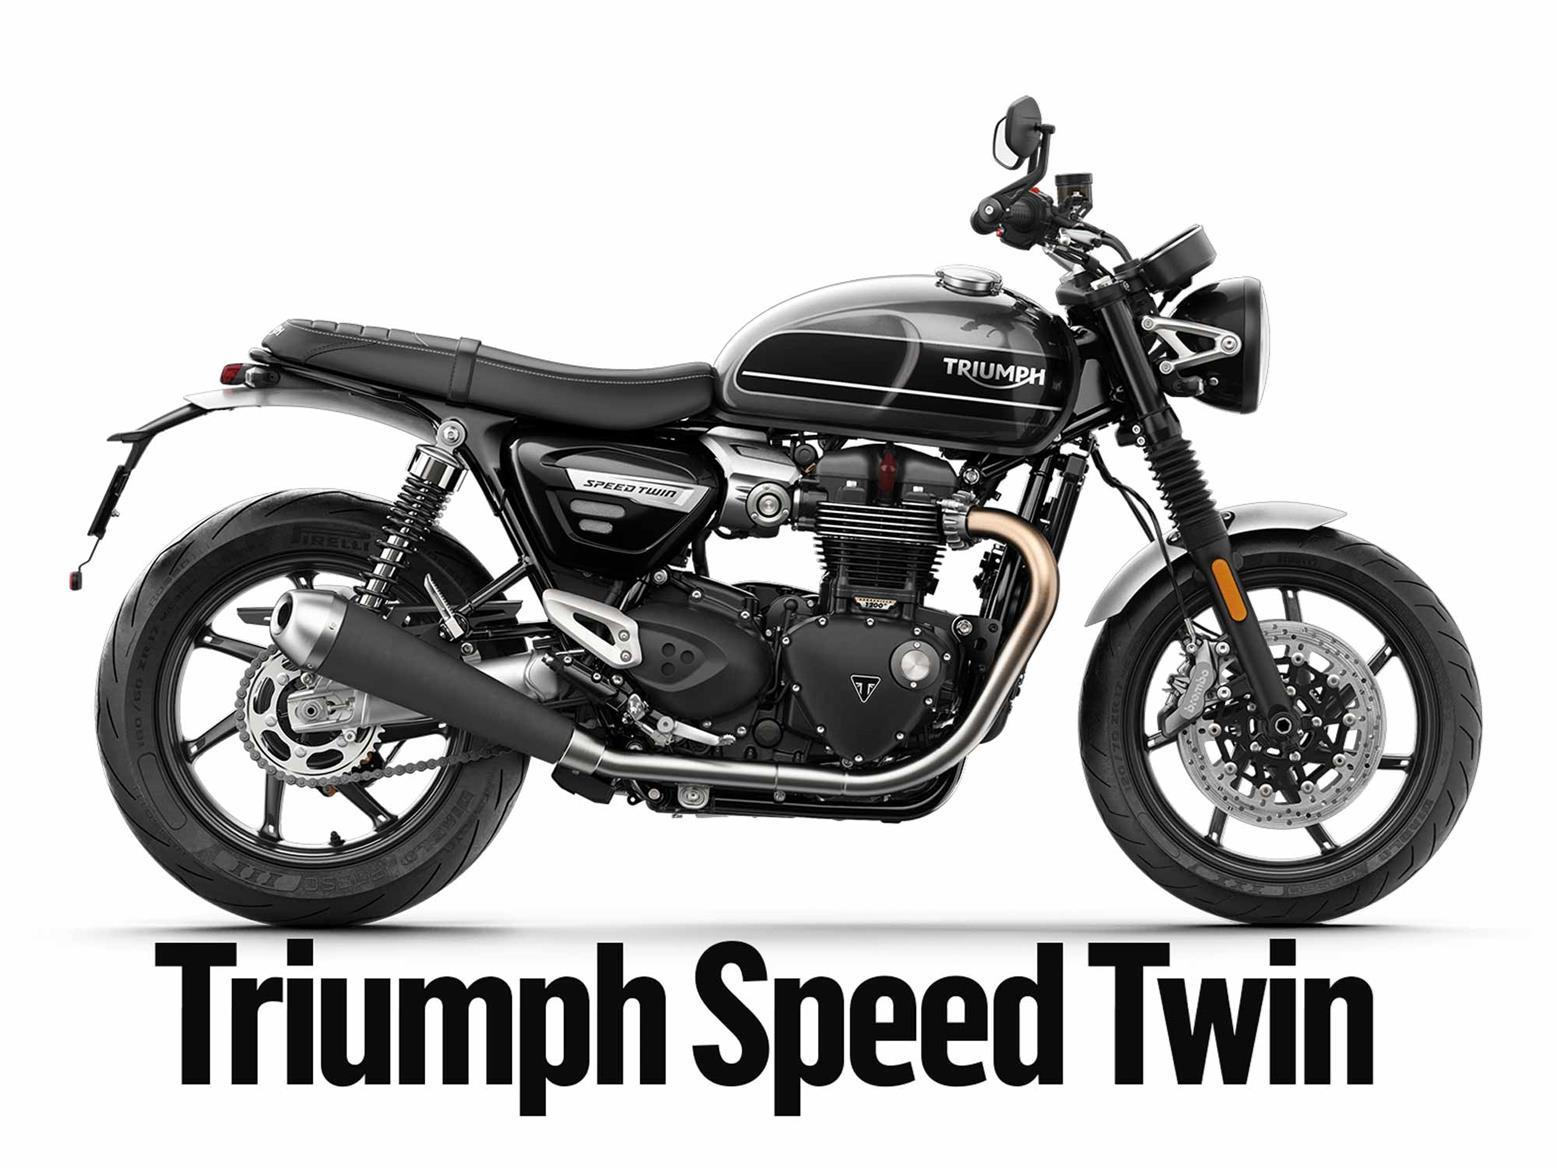 Read MCN's detailed Triumph Speed Twin long-term test review here